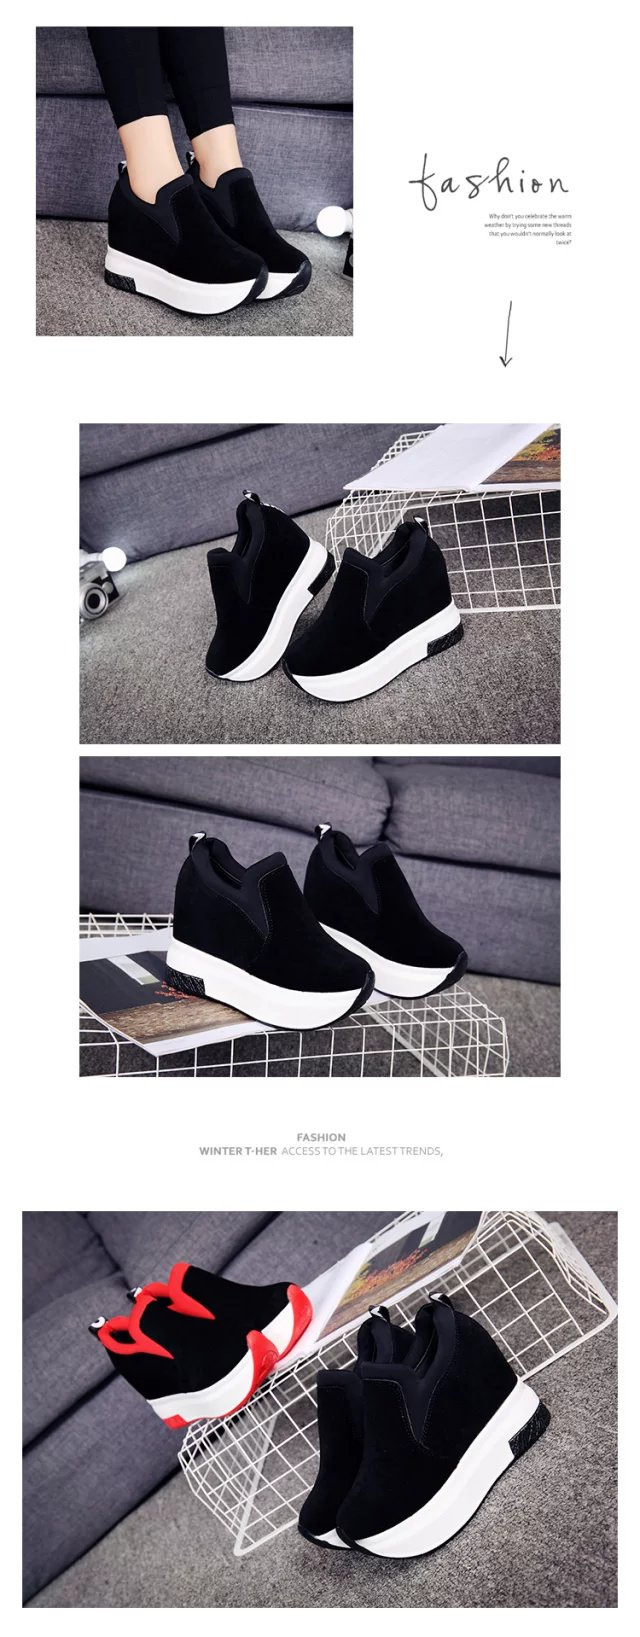 XEK 2018 Women Increased Shoes Women Fashion Platform Loafers Printed Casual Shoes Woman Wedges Shoes Breathable ZLL300 10